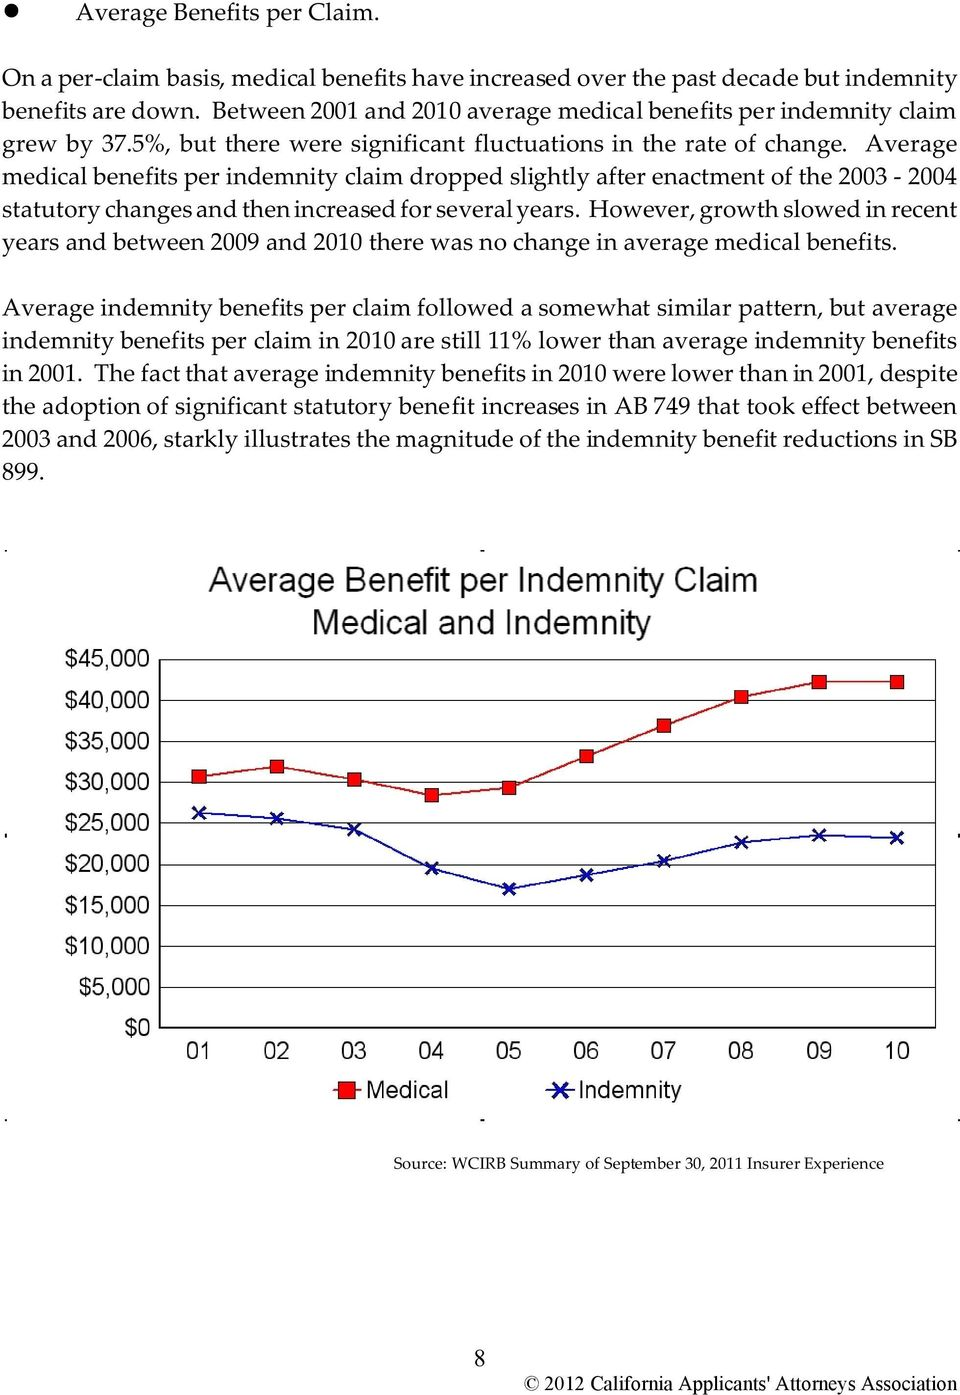 Average medical benefits per indemnity claim dropped slightly after enactment of the 2003-2004 statutory changes and then increased for several years.